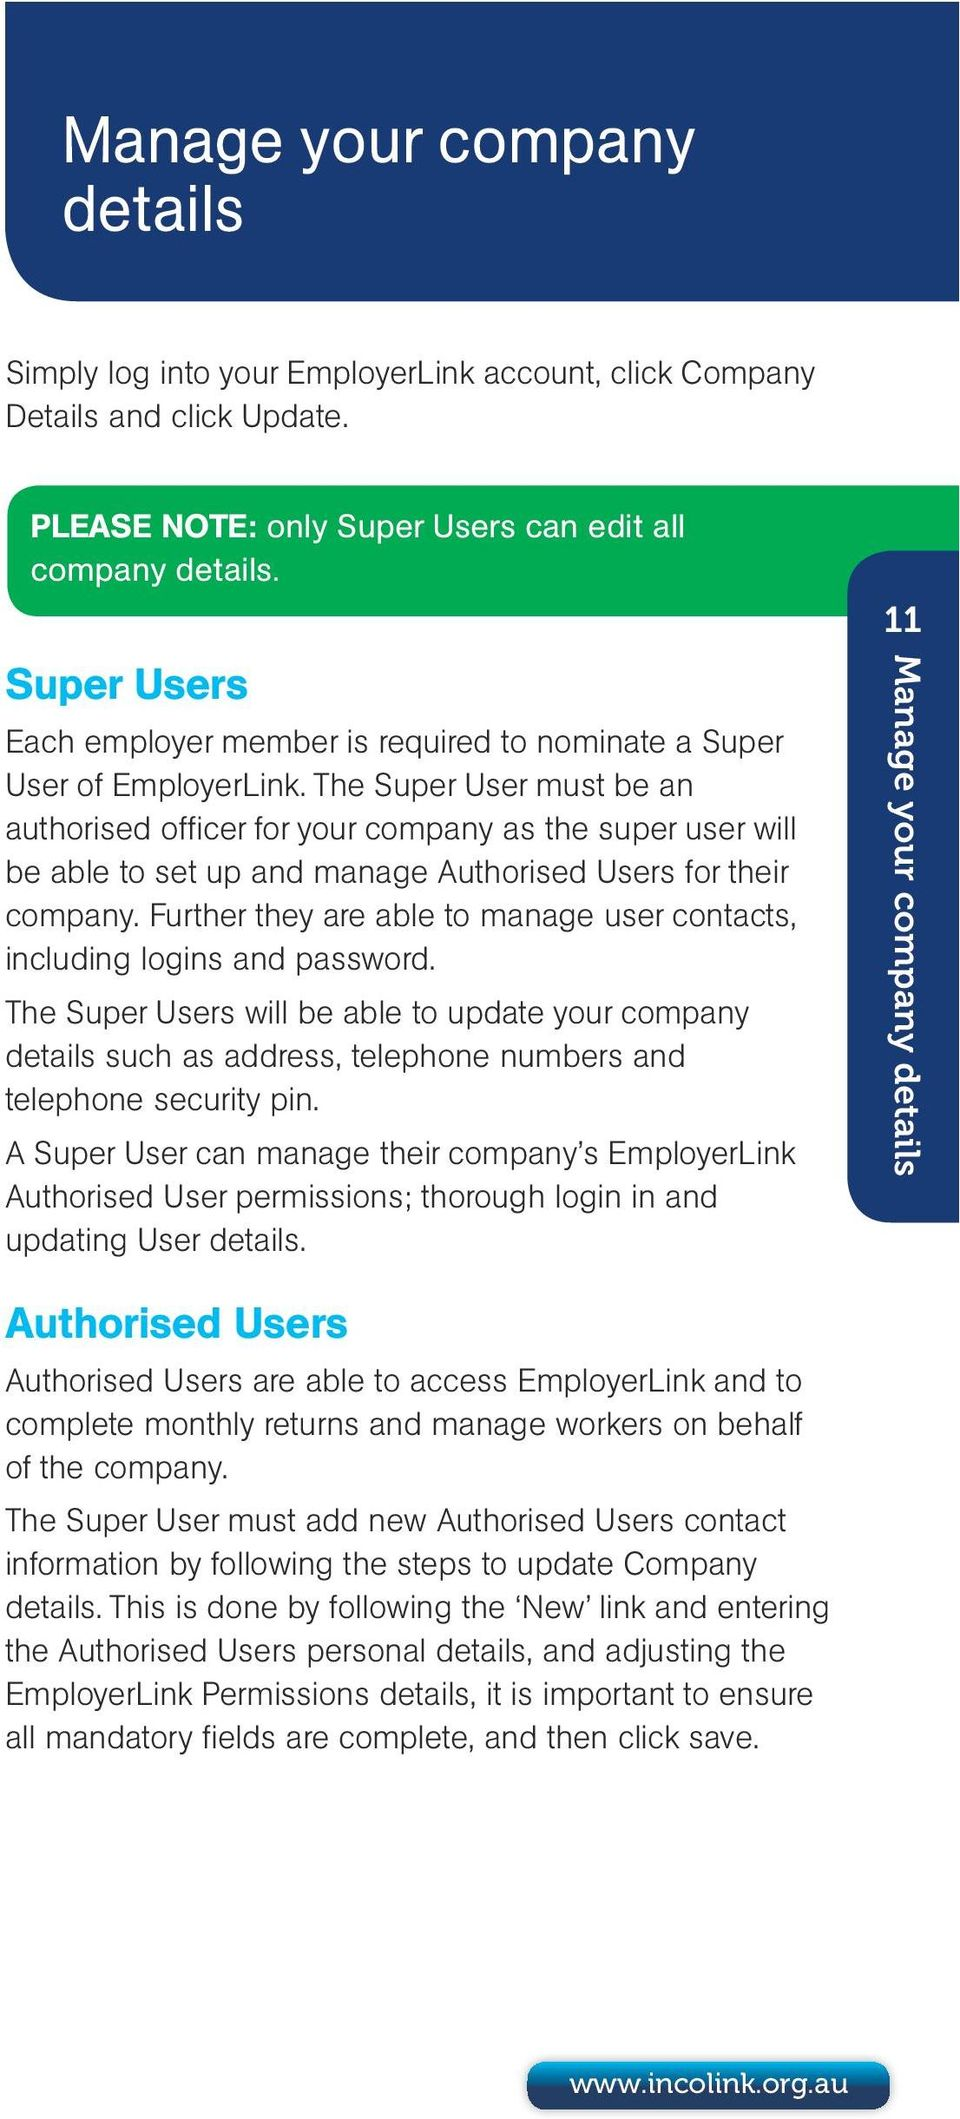 The Super User must be an authorised officer for your company as the super user will be able to set up and manage Authorised Users for their company.